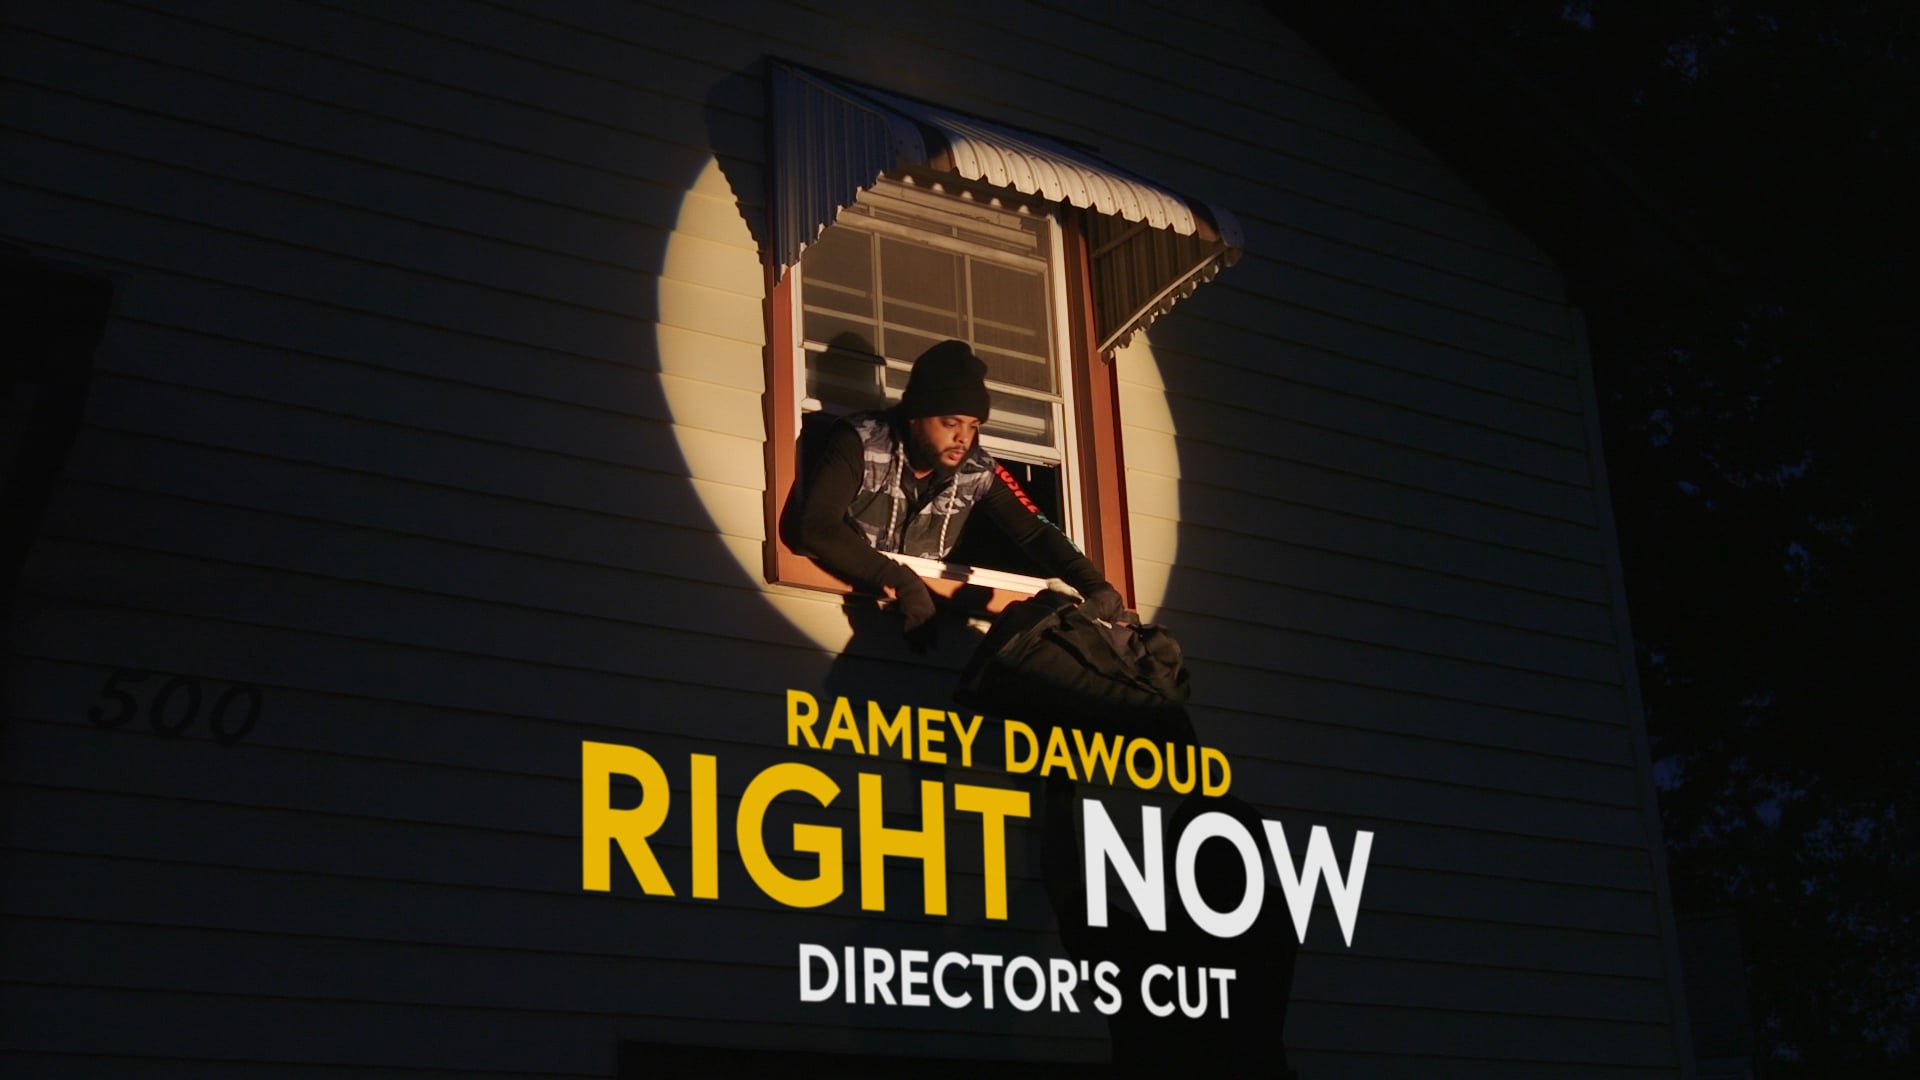 Right Now by Ramey Dawoud (Director's Cut)